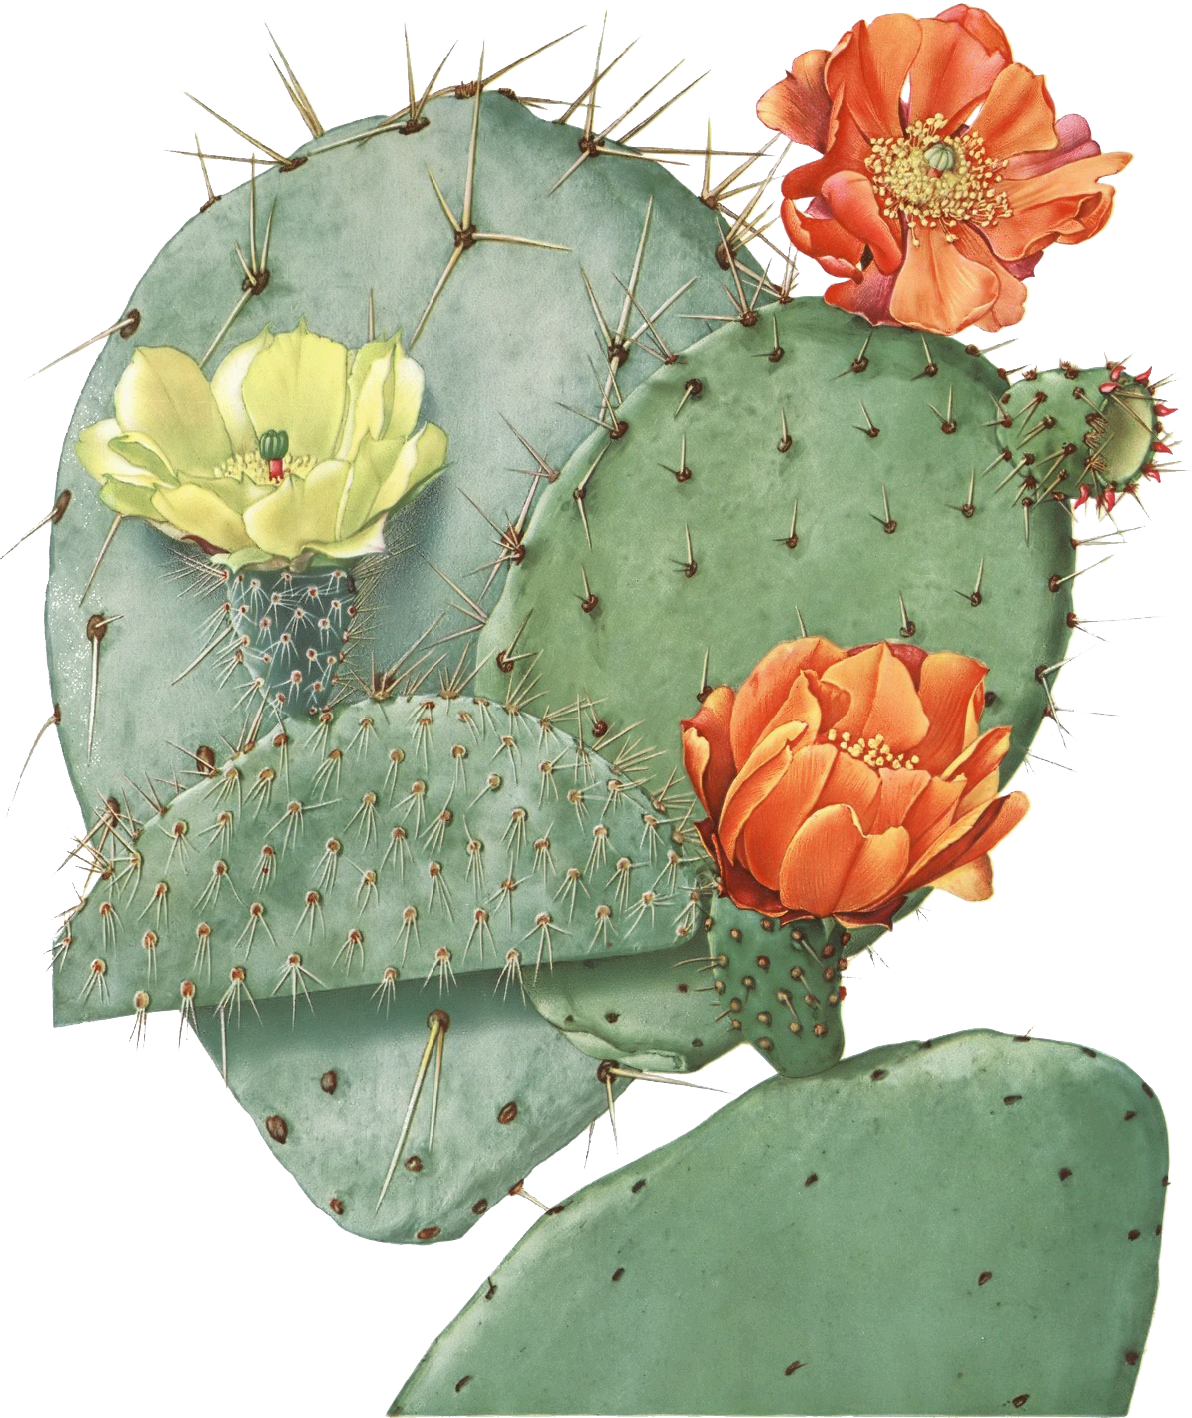 image result for prickly pear illustration texas things